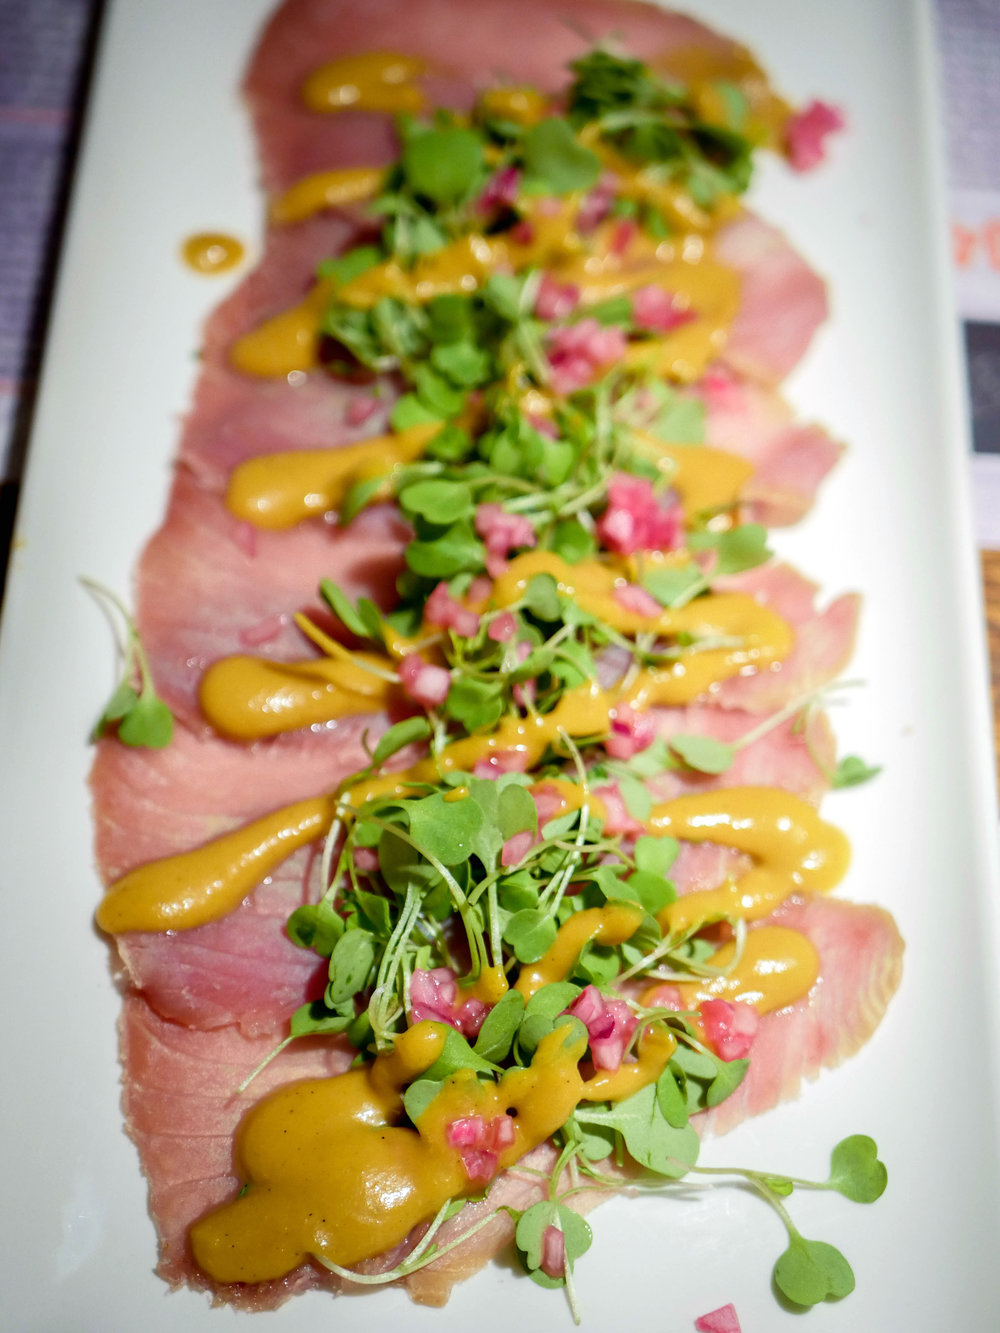 Tuna prosciutto at Mali Bar.